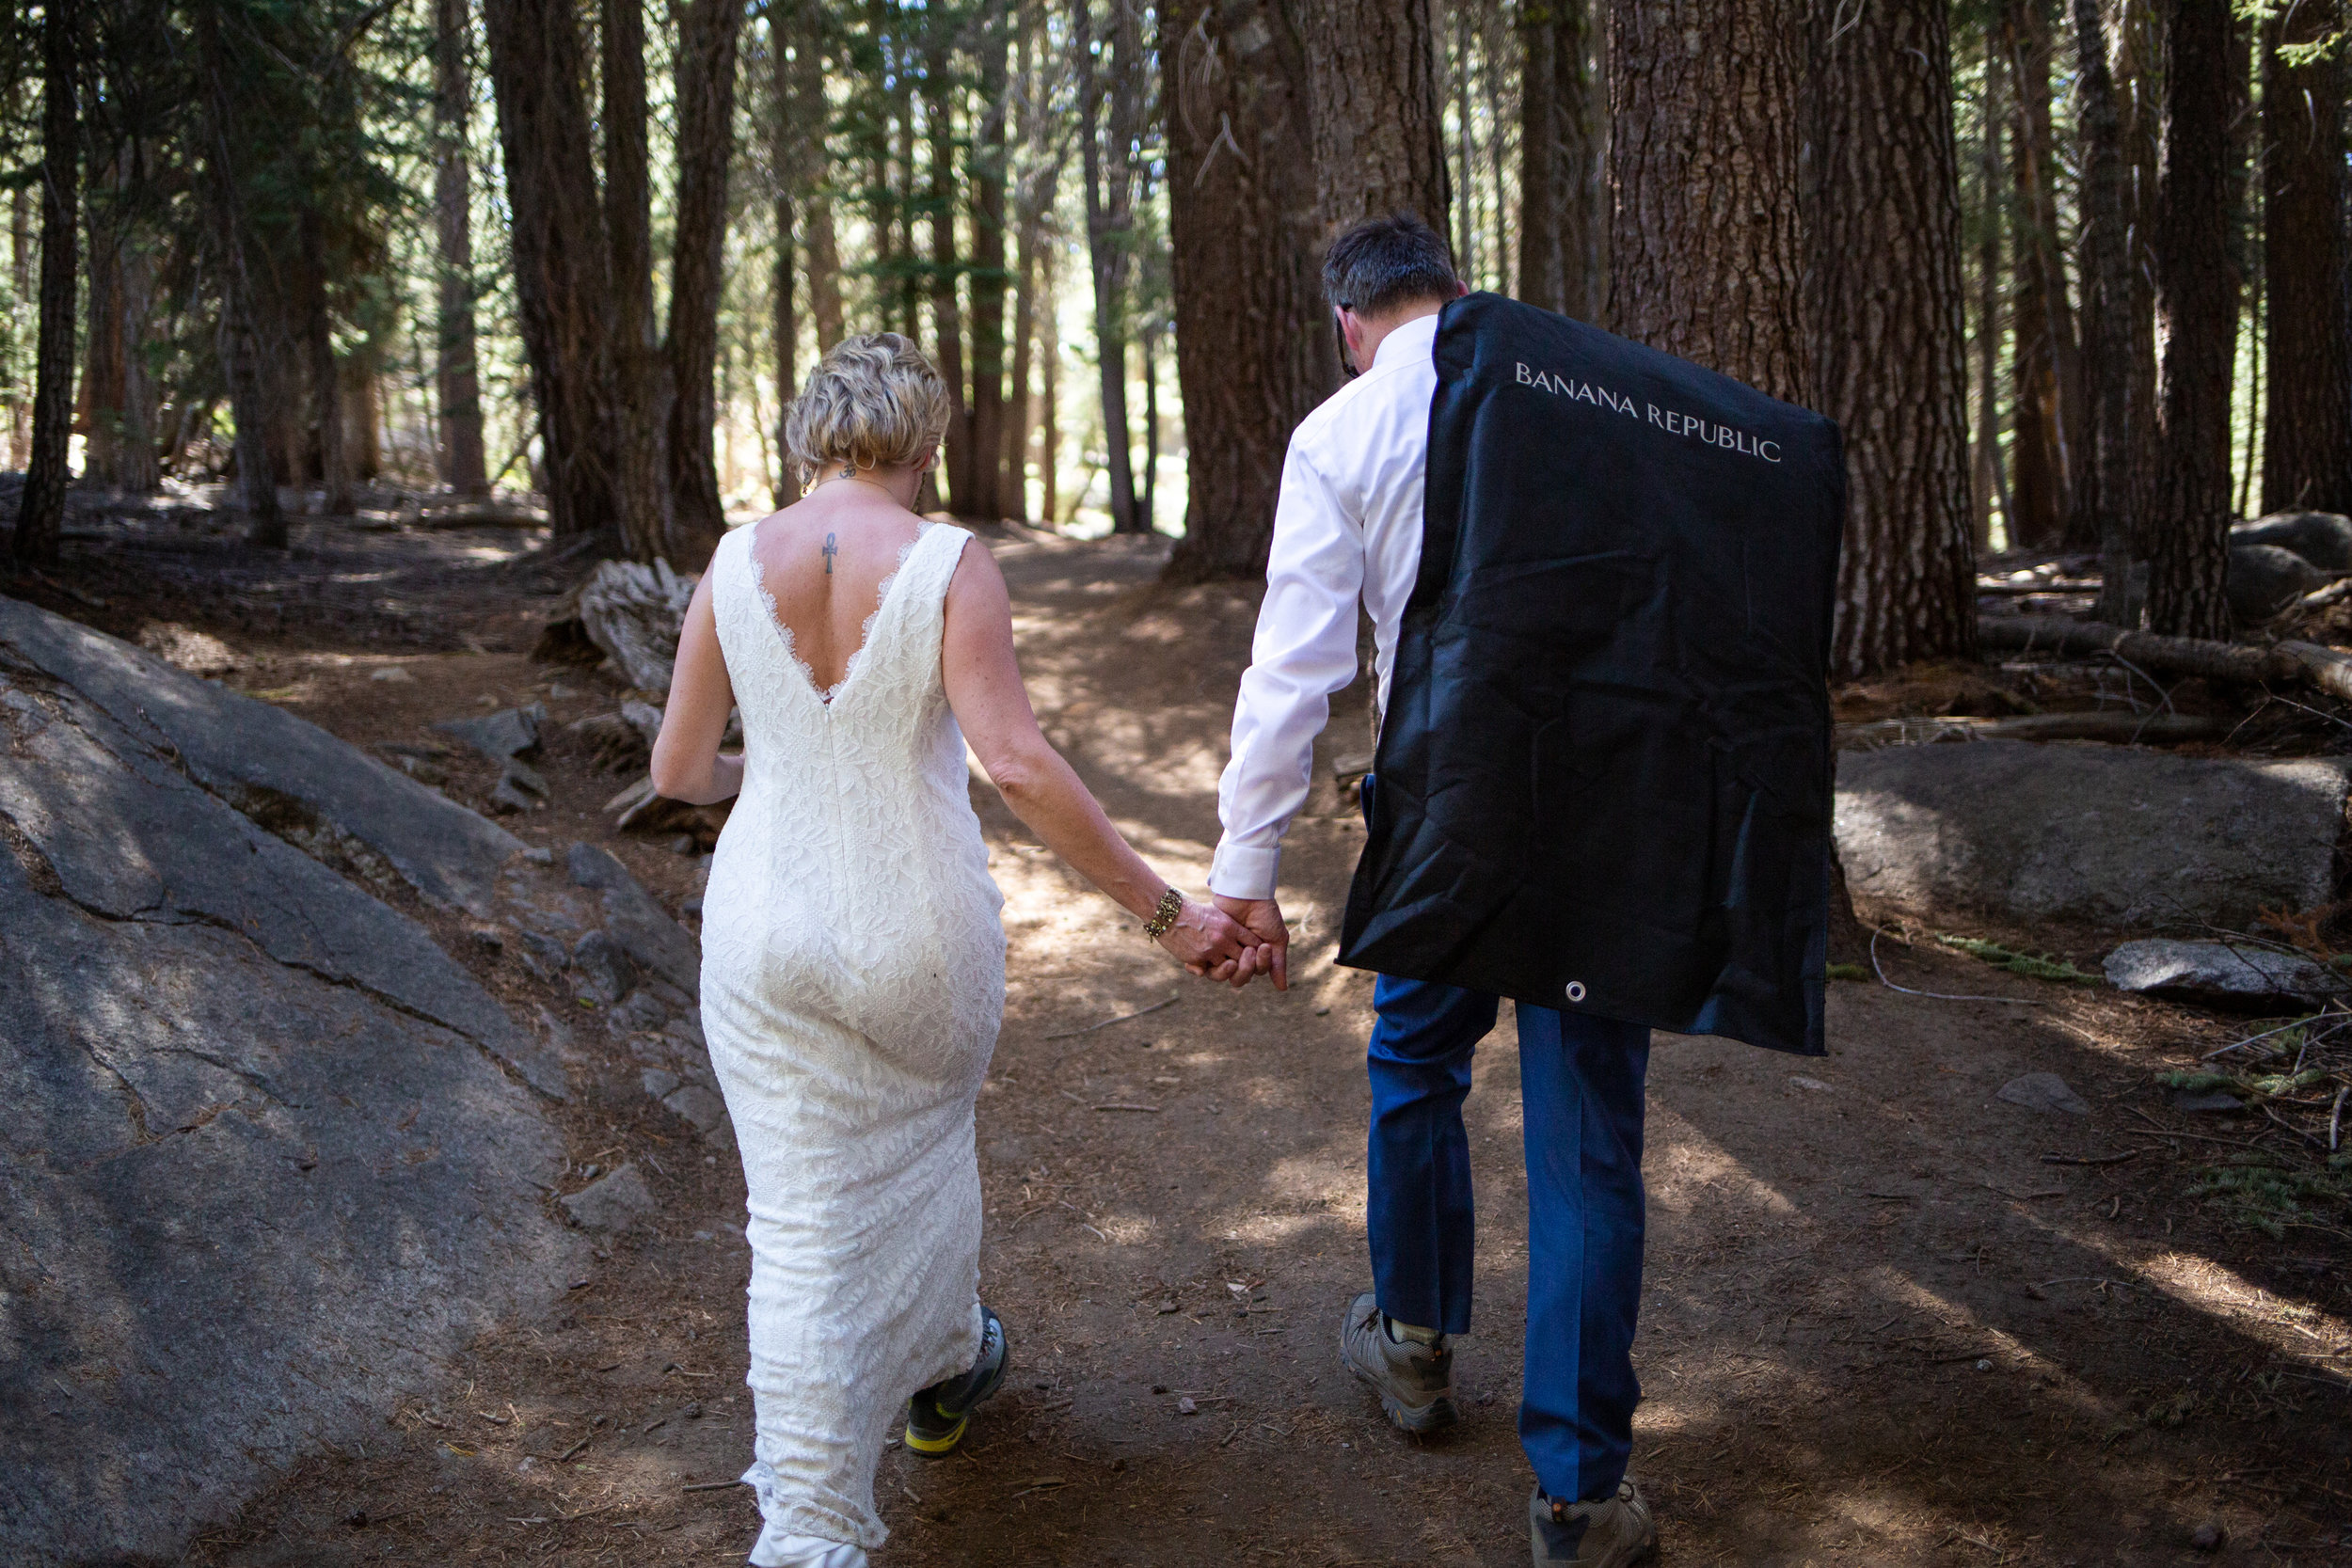 Yosemite-Wedding-photography-lisa-james (10).jpg